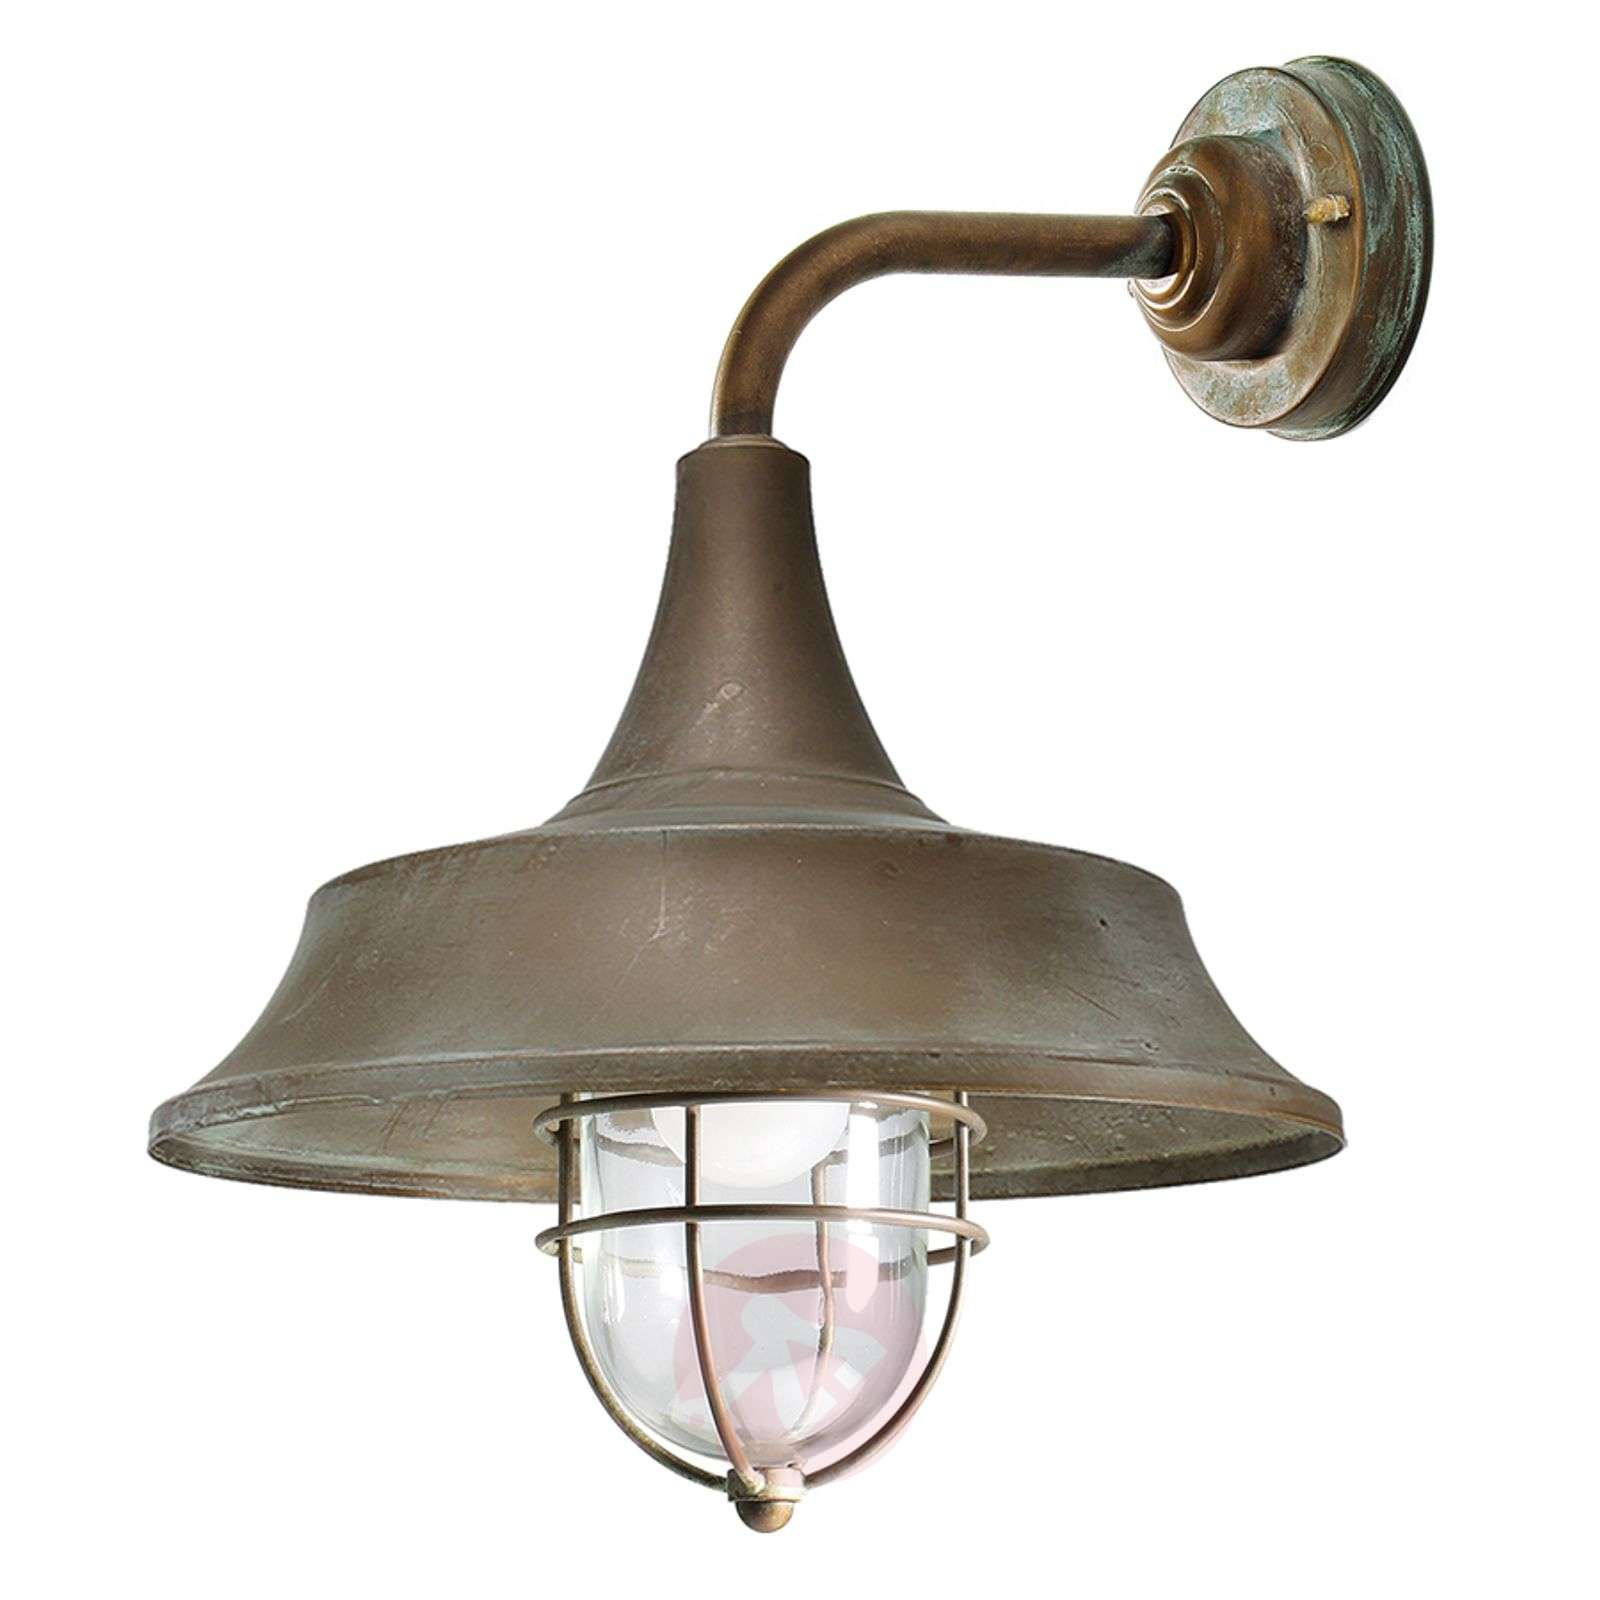 Seawater-resistant outdoor wall lamp Diego-6515348-01